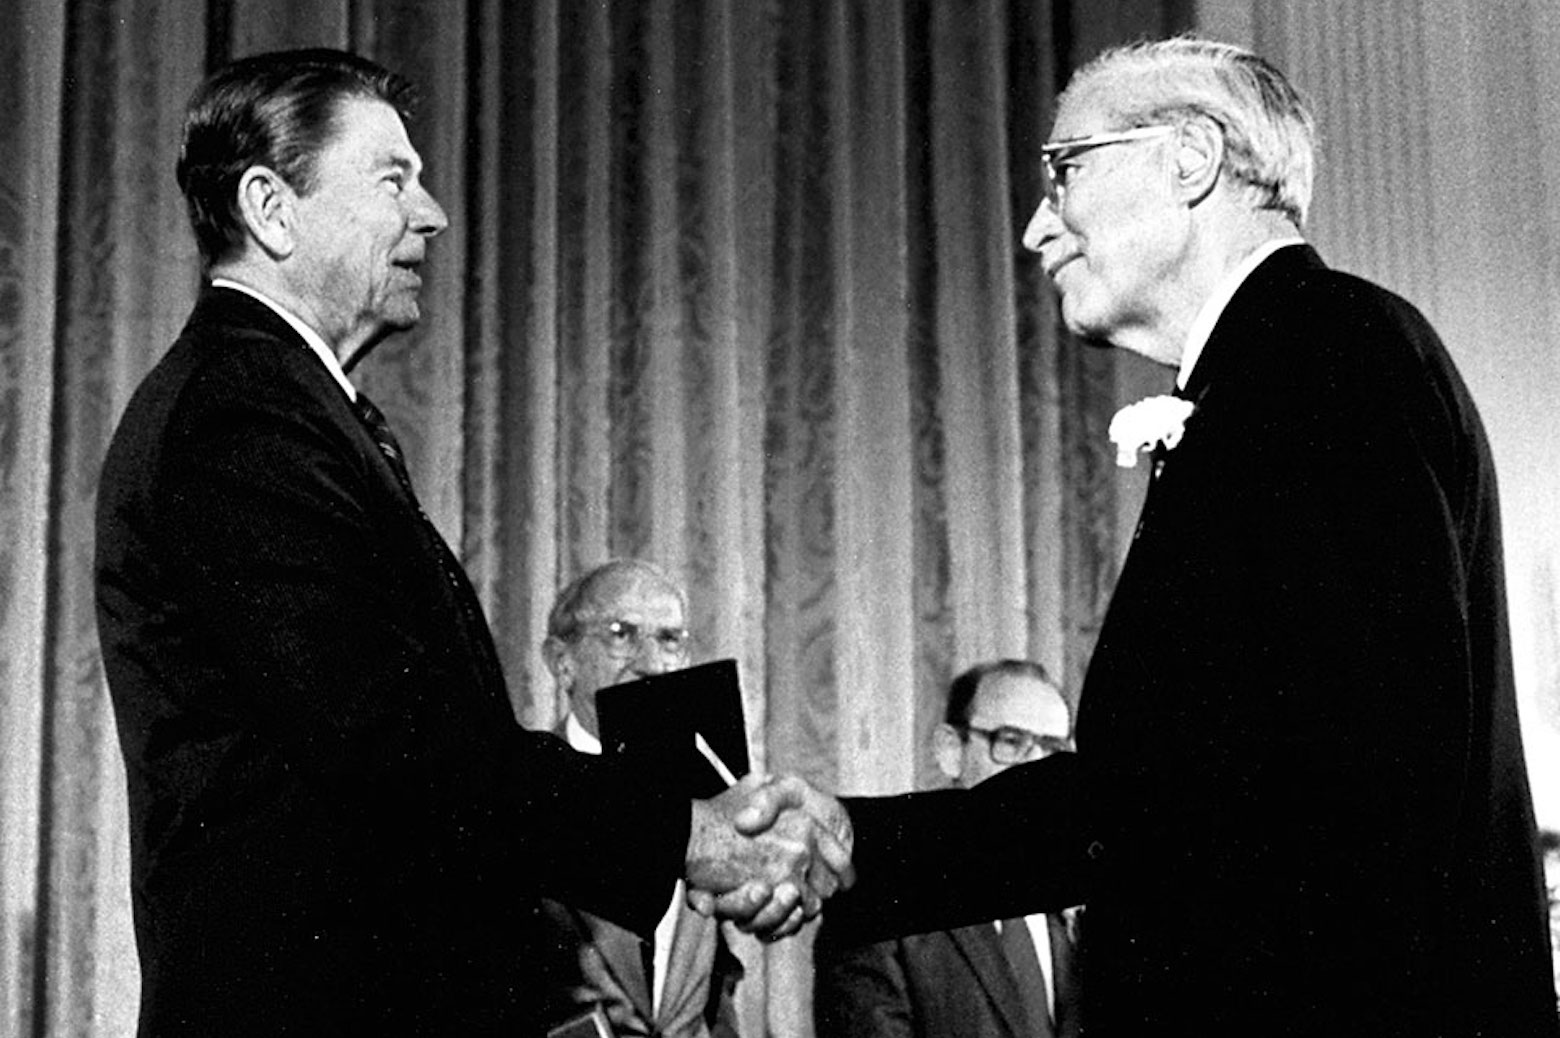 Donald Katz shaking hands with Ronal Reagan on stage